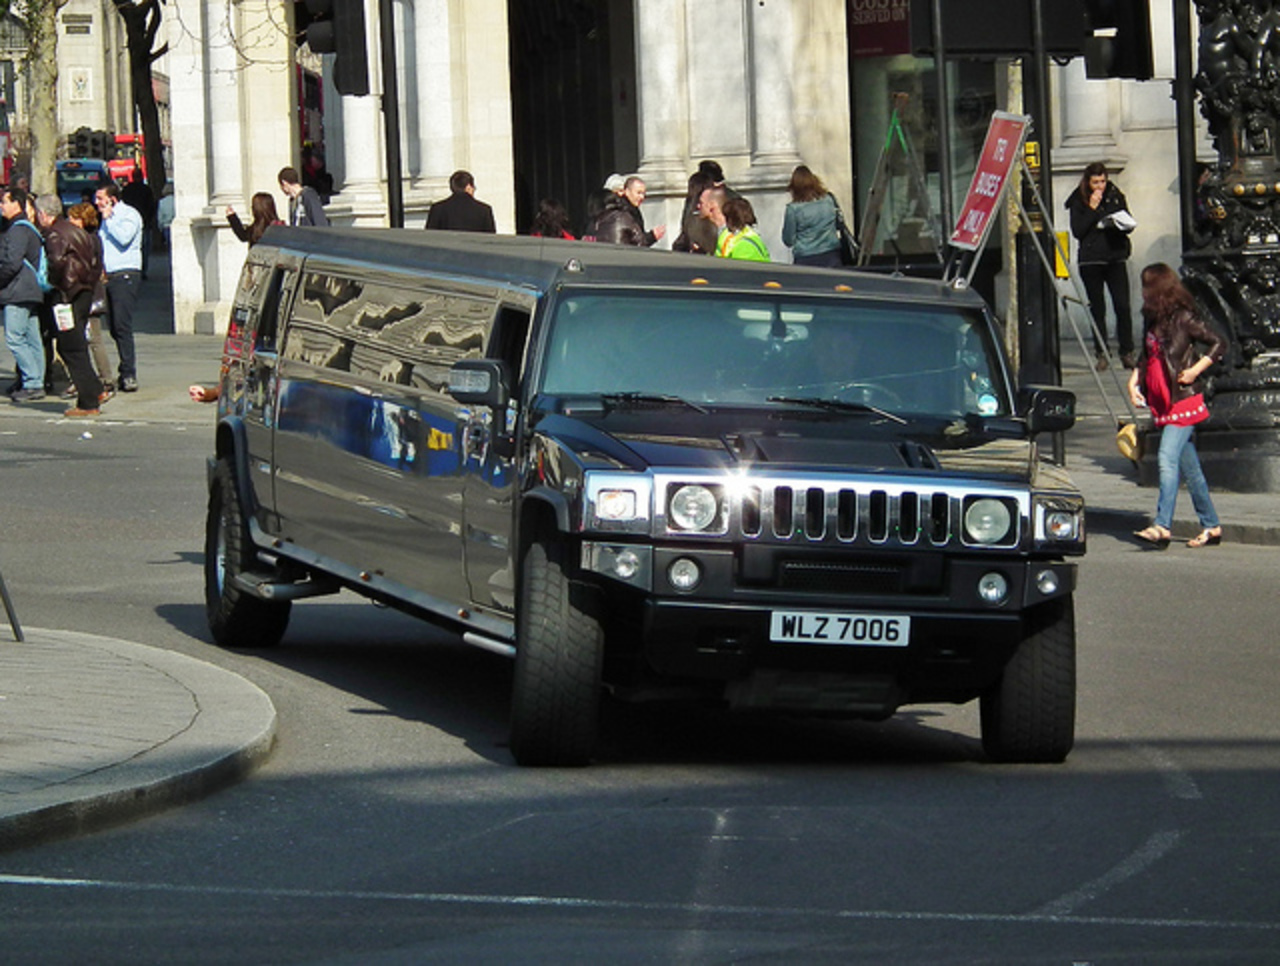 Hummer H2 Limo | Flickr - Photo Sharing!